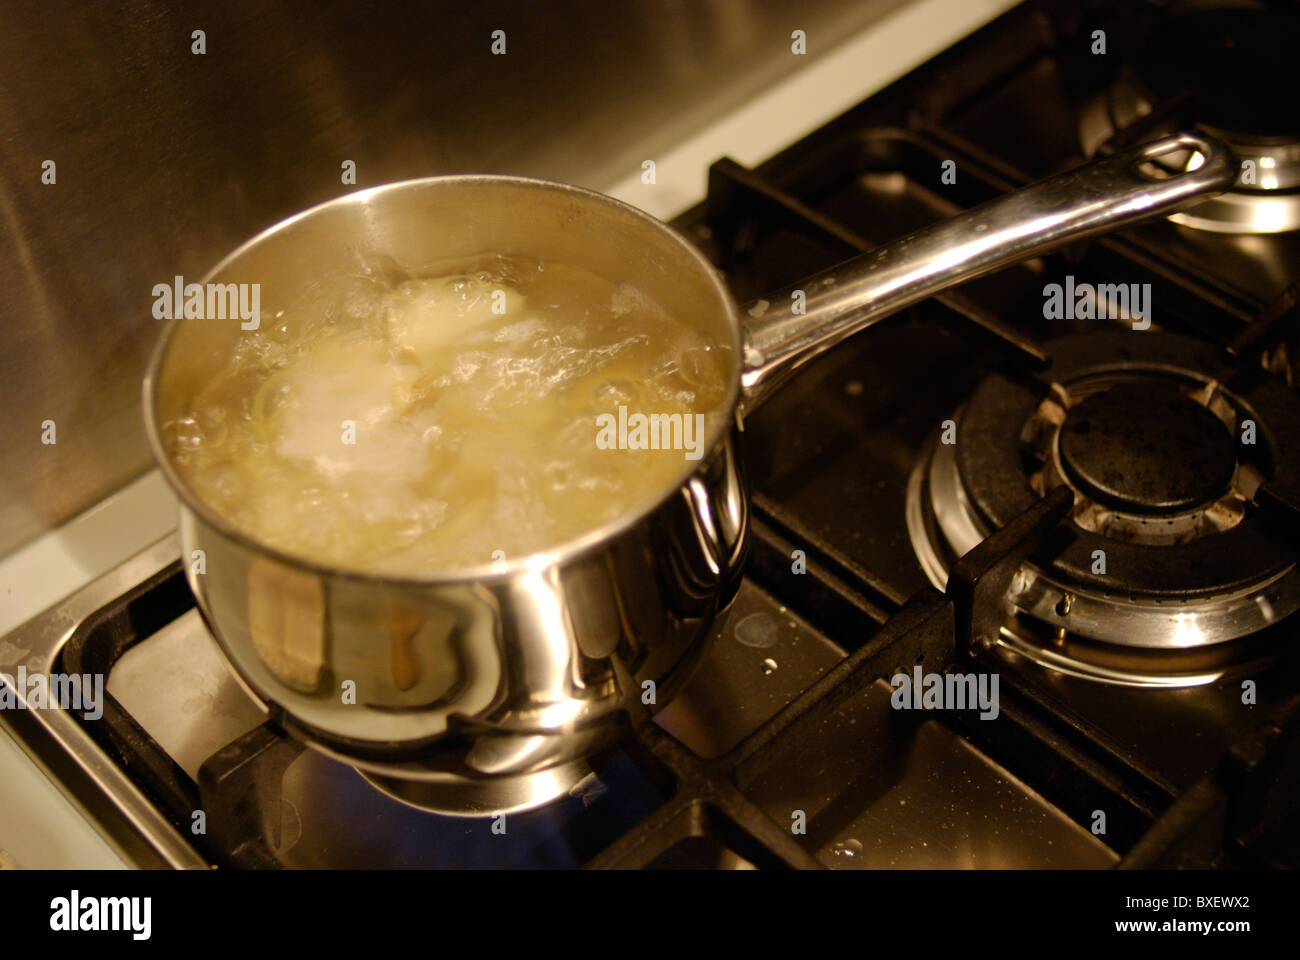 Potatoes simmering in a pan of boiling water on a gas hob. - Stock Image